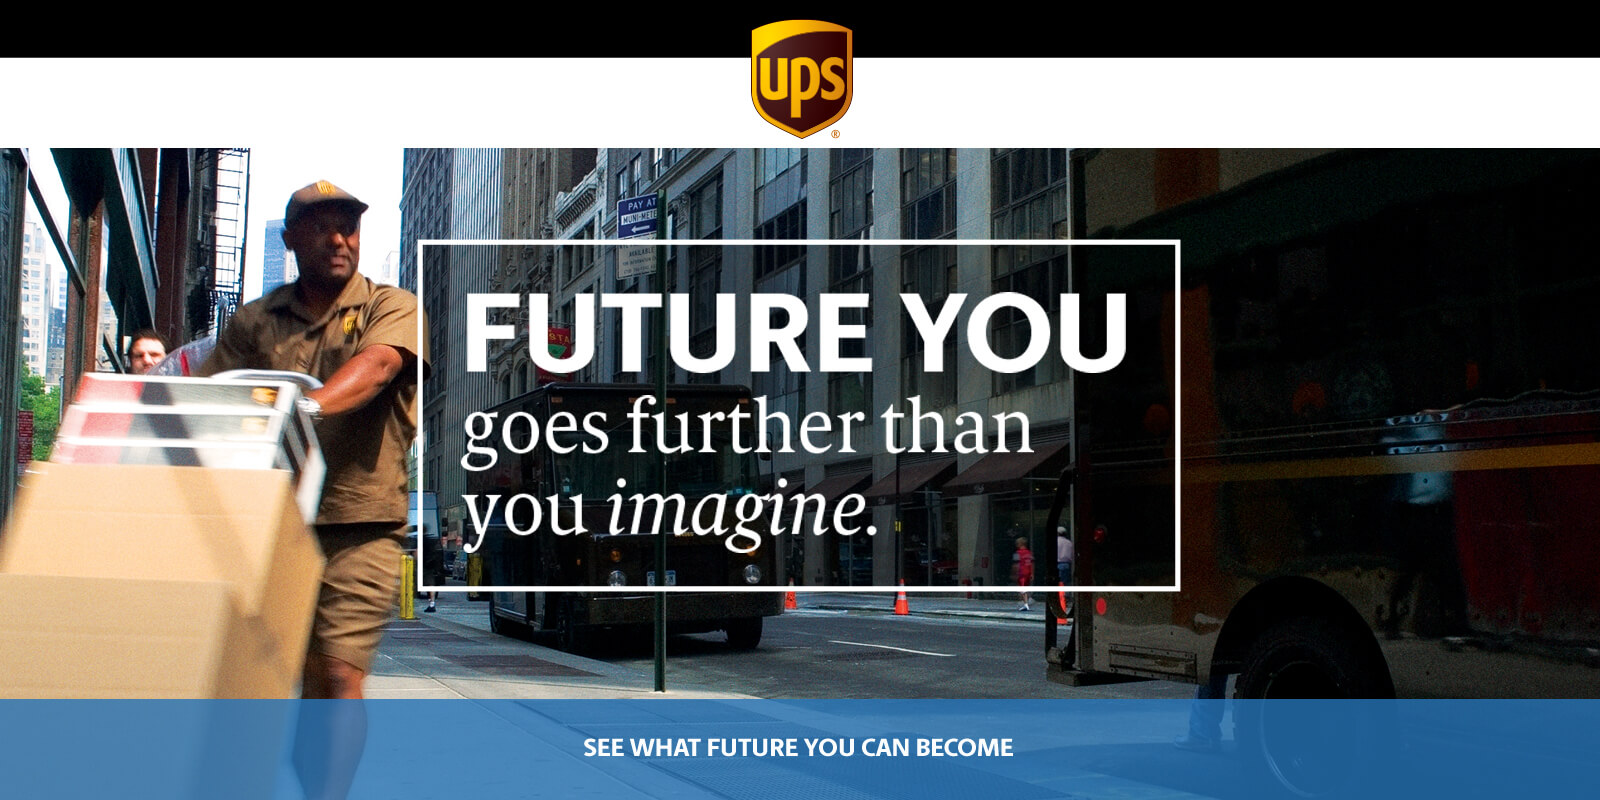 Full-time City Driver at United Parcel Service (UPS)